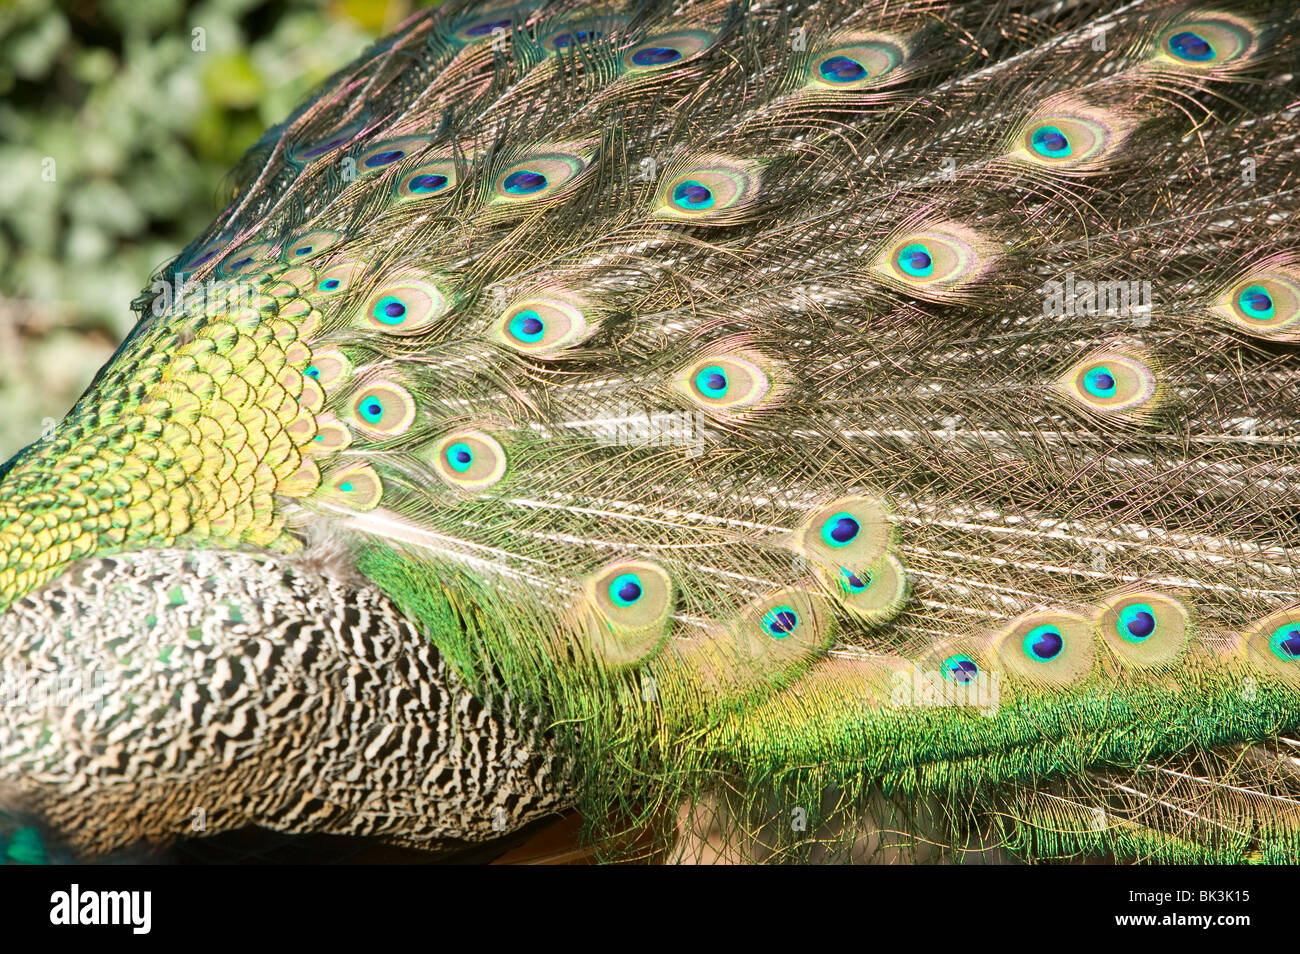 feathers bir colors peacock texture ilustration detail background animal - Stock Image